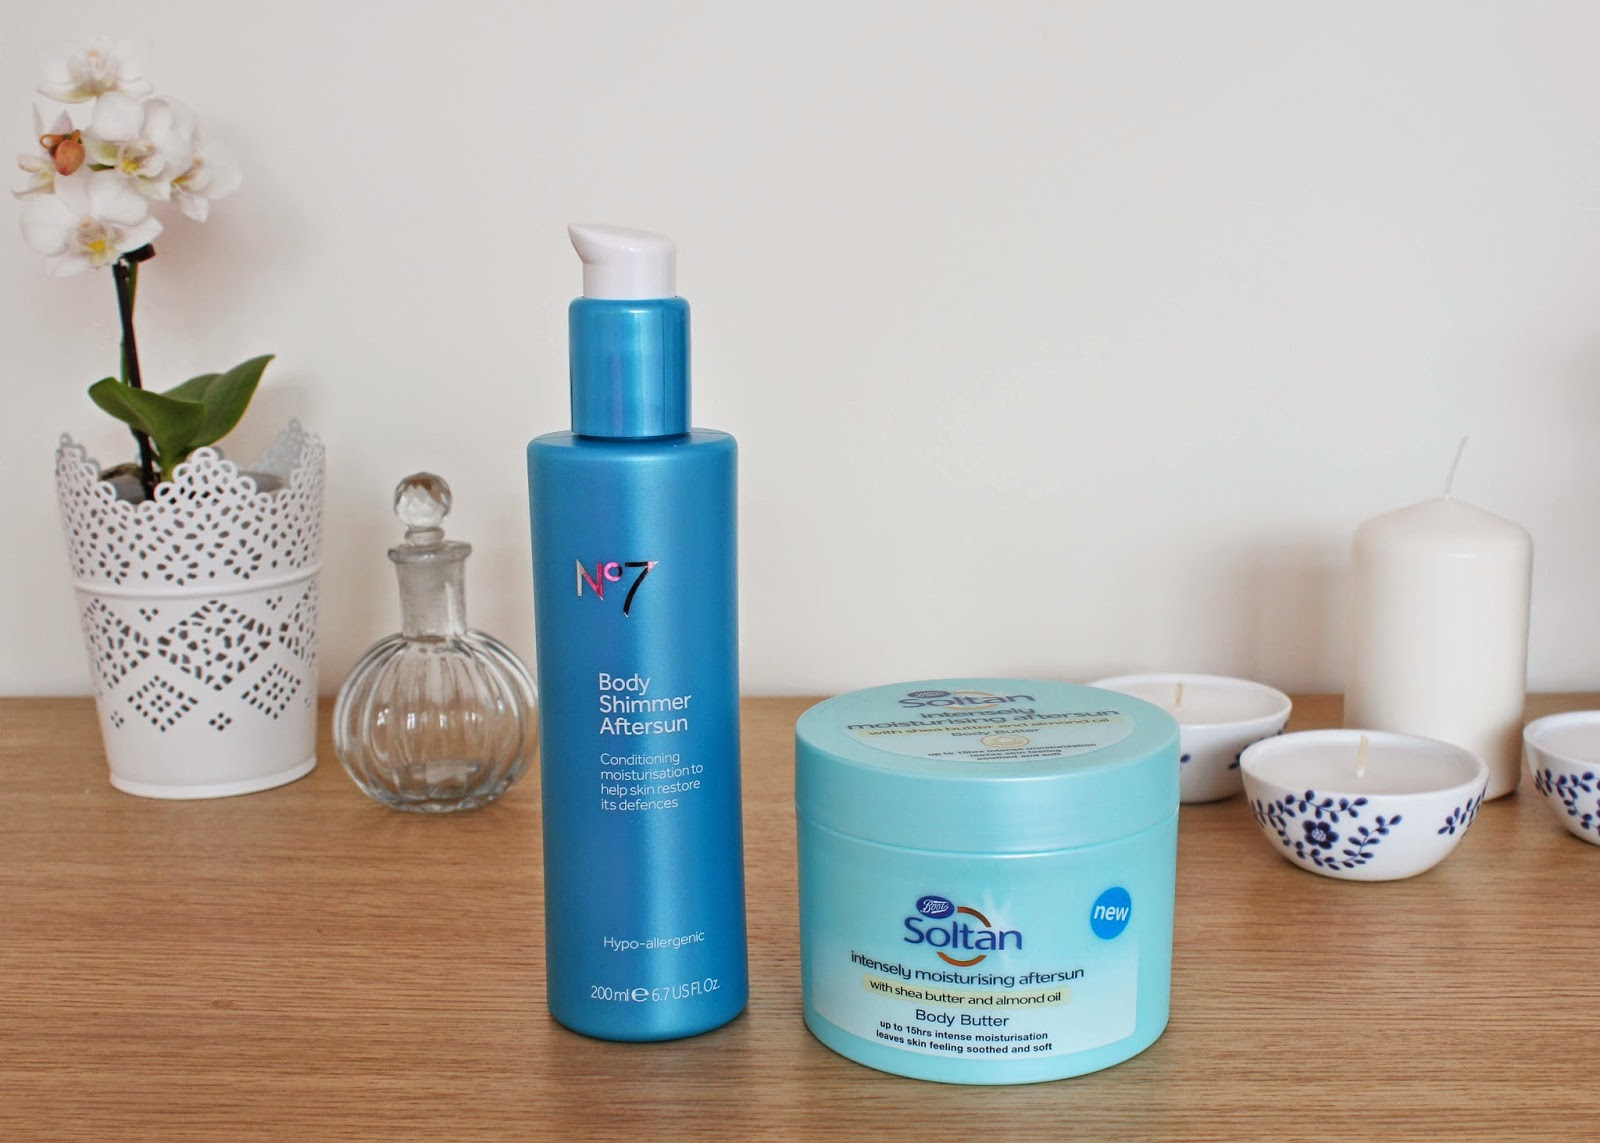 Boots aftersun care: No7 Body Shimmer and Soltan Body Butter